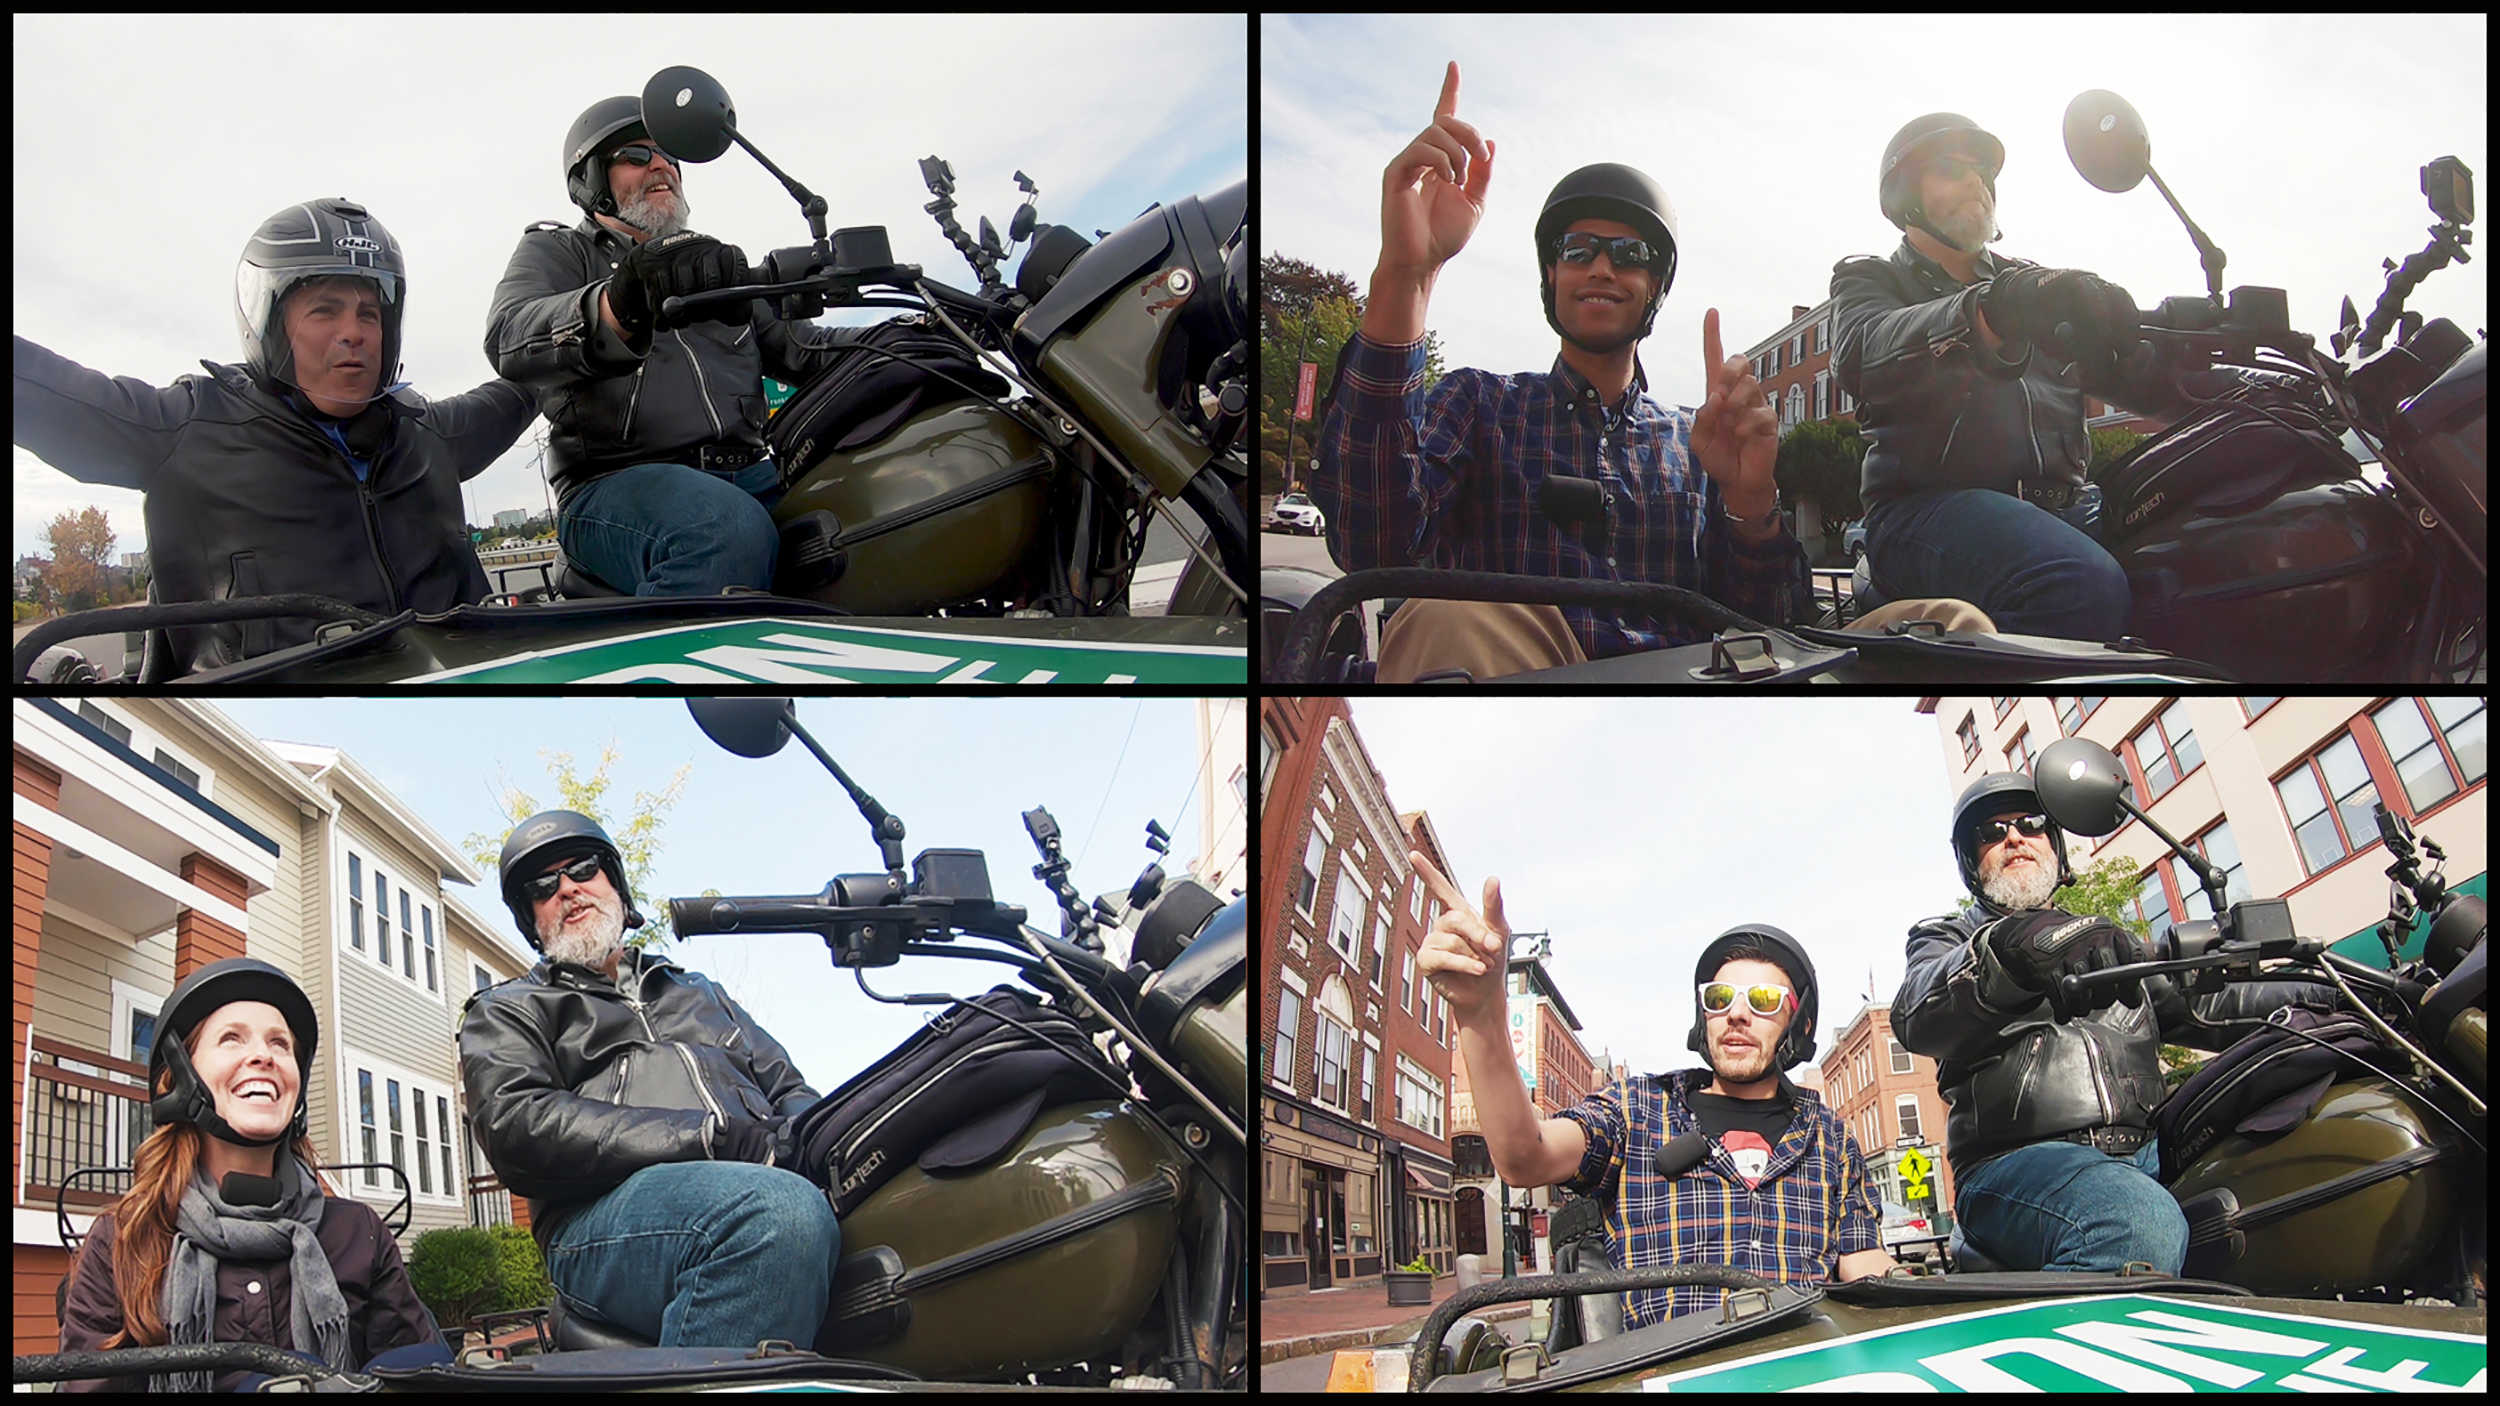 Portland's mayoral candidates answer questions riding around in a motorcycle sidecar